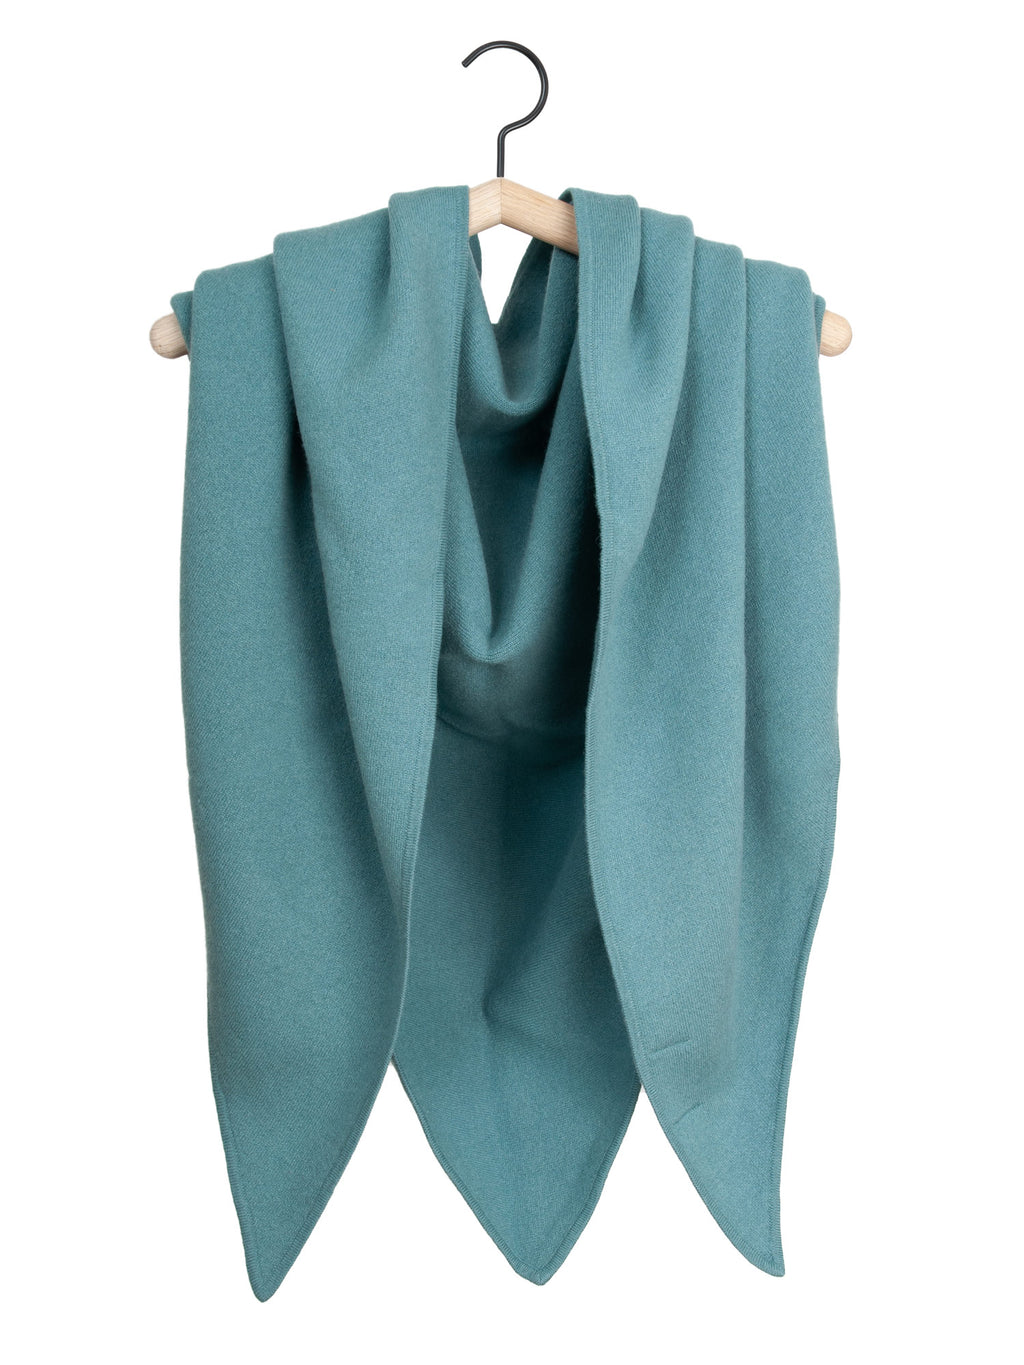 cashmere scarf Triangle in 100% cashmere by Kashmina